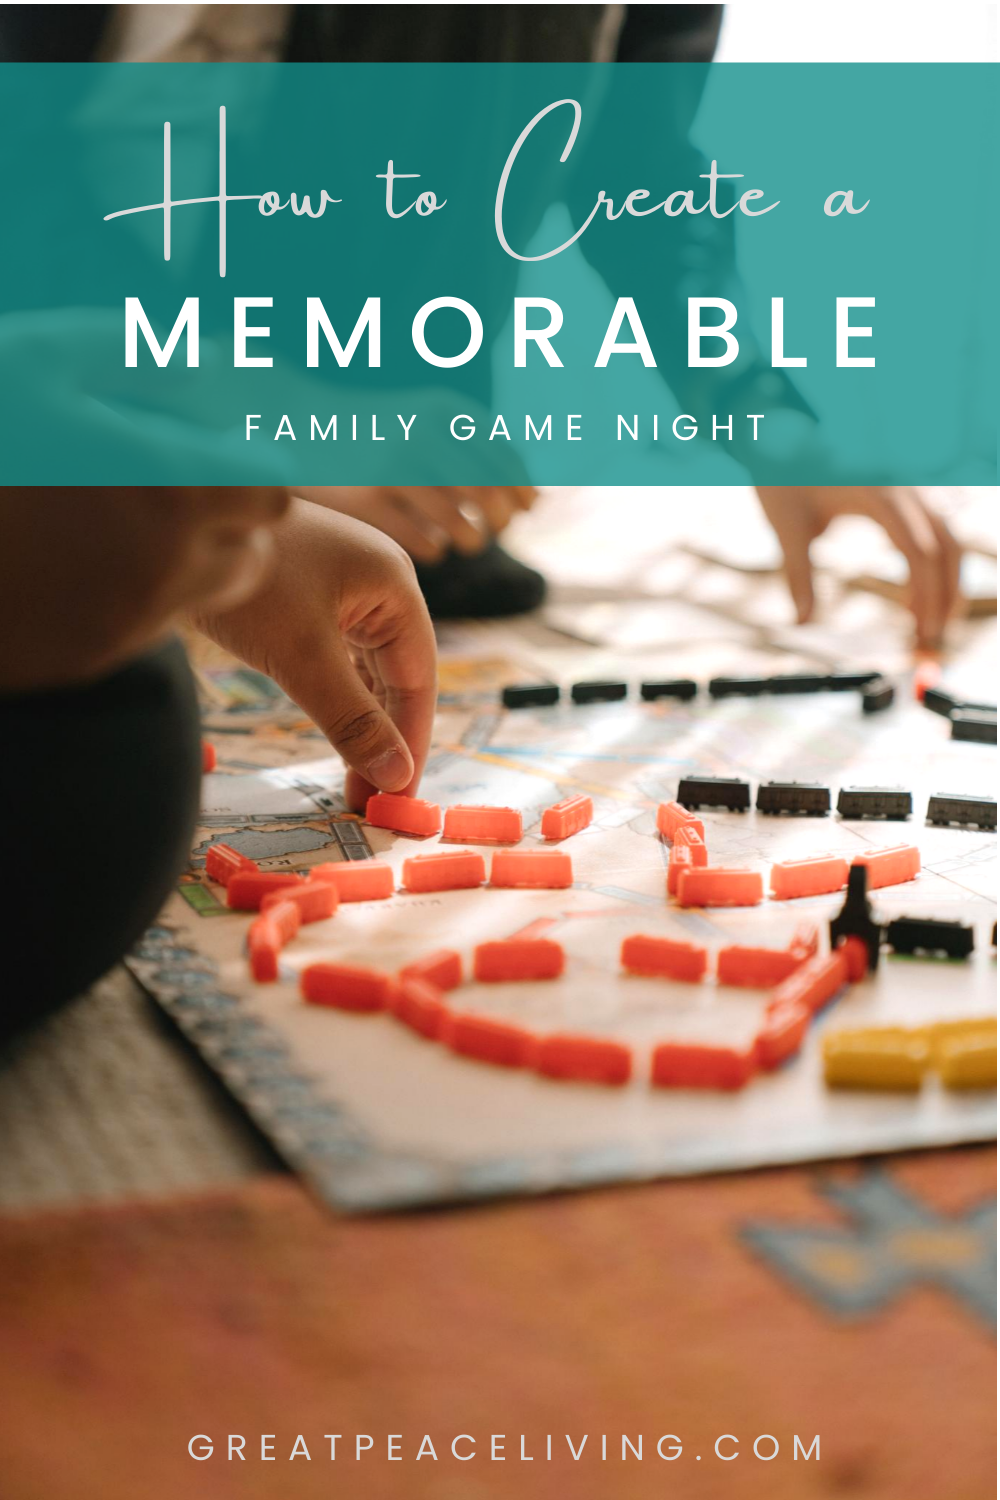 How to Create Memorable Family Game Nights